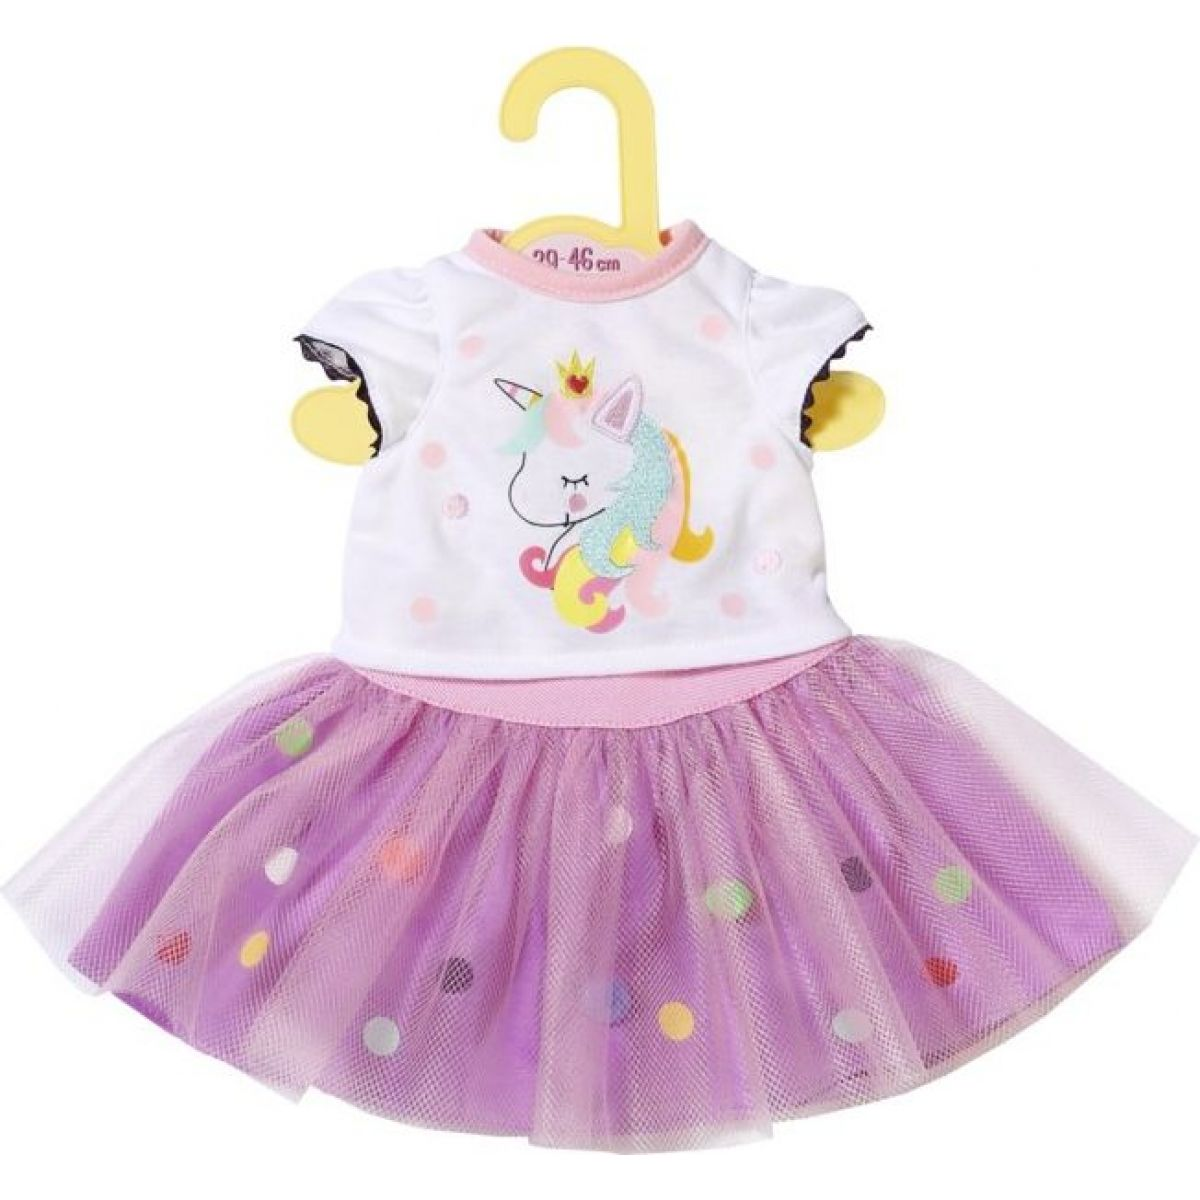 Zapf Creation Dolly Moda Tričko s tutu sukýnkou 43cm